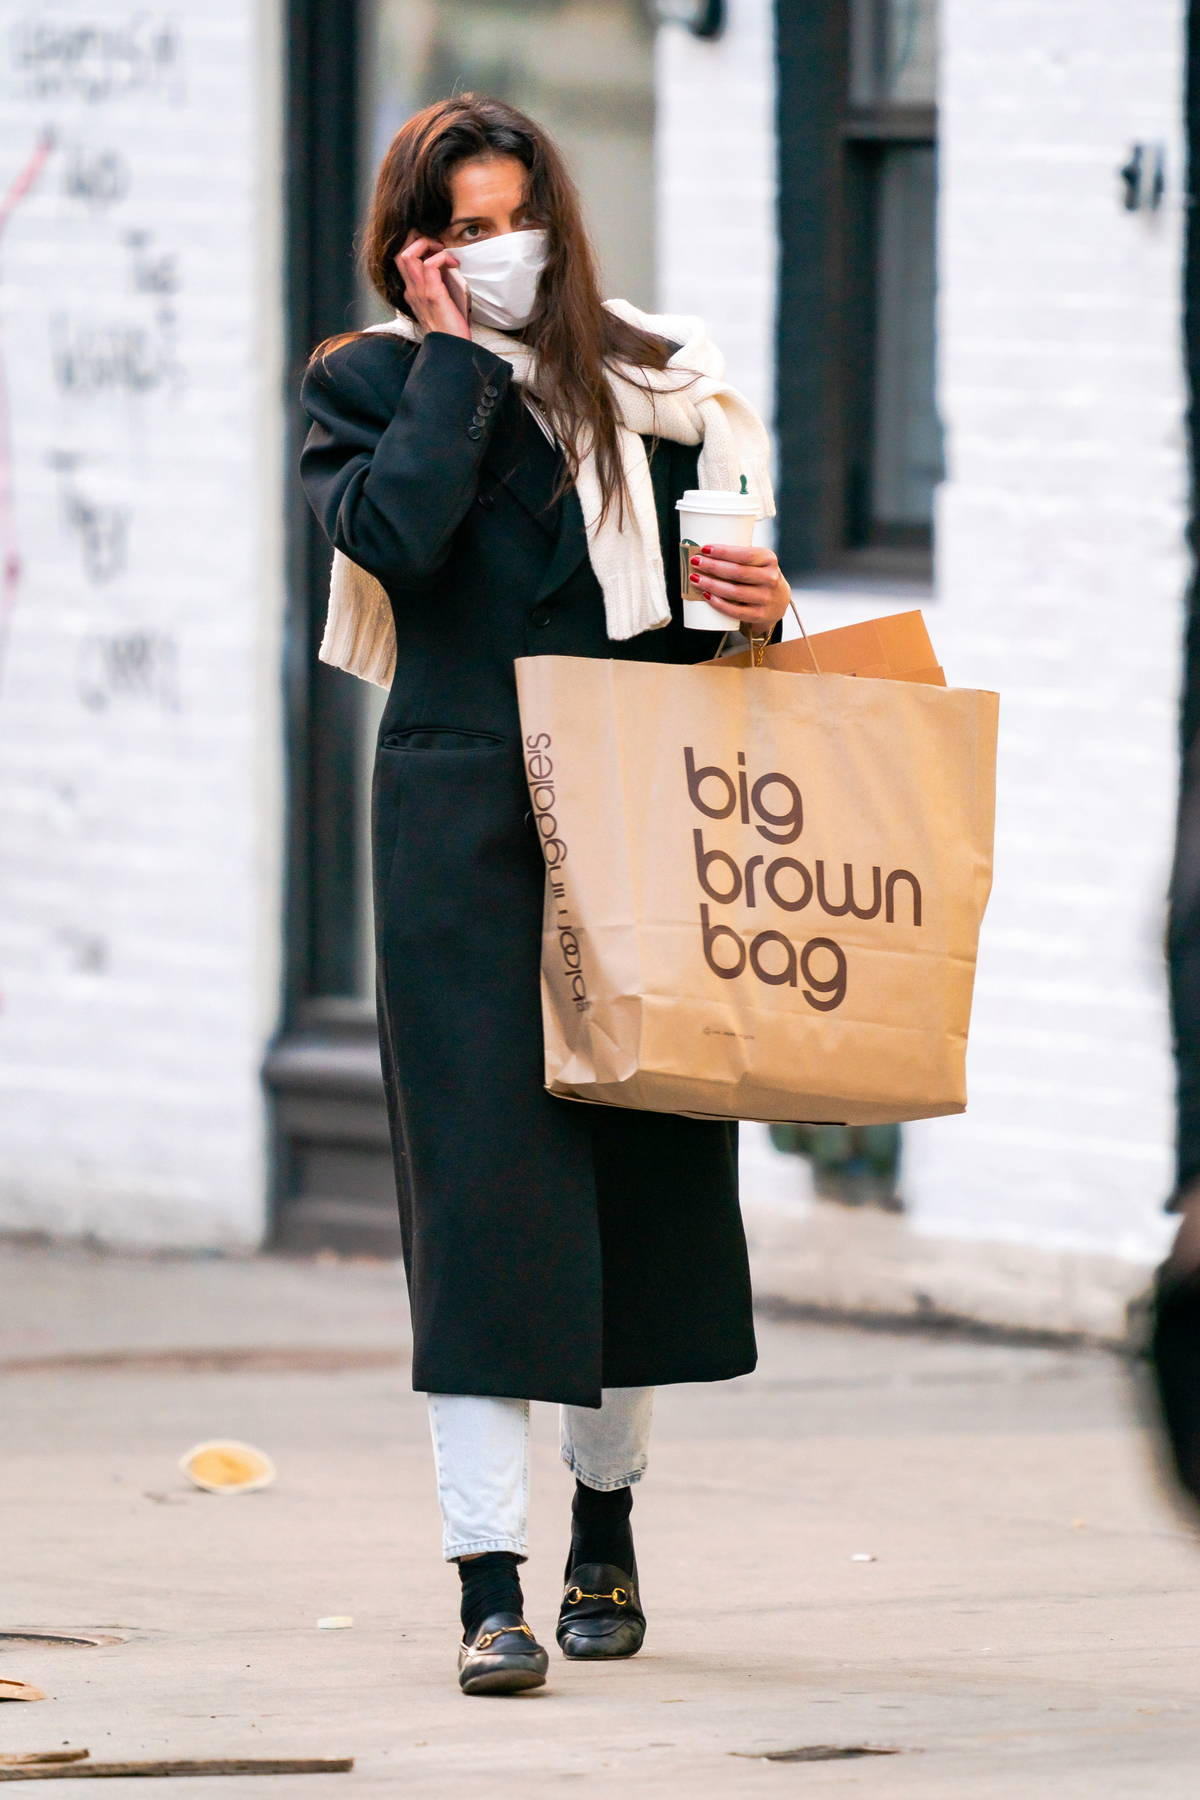 Katie Holmes looks cozy in a full-length wool coat as she enjoys a cup of Starbucks while out shopping in New York City